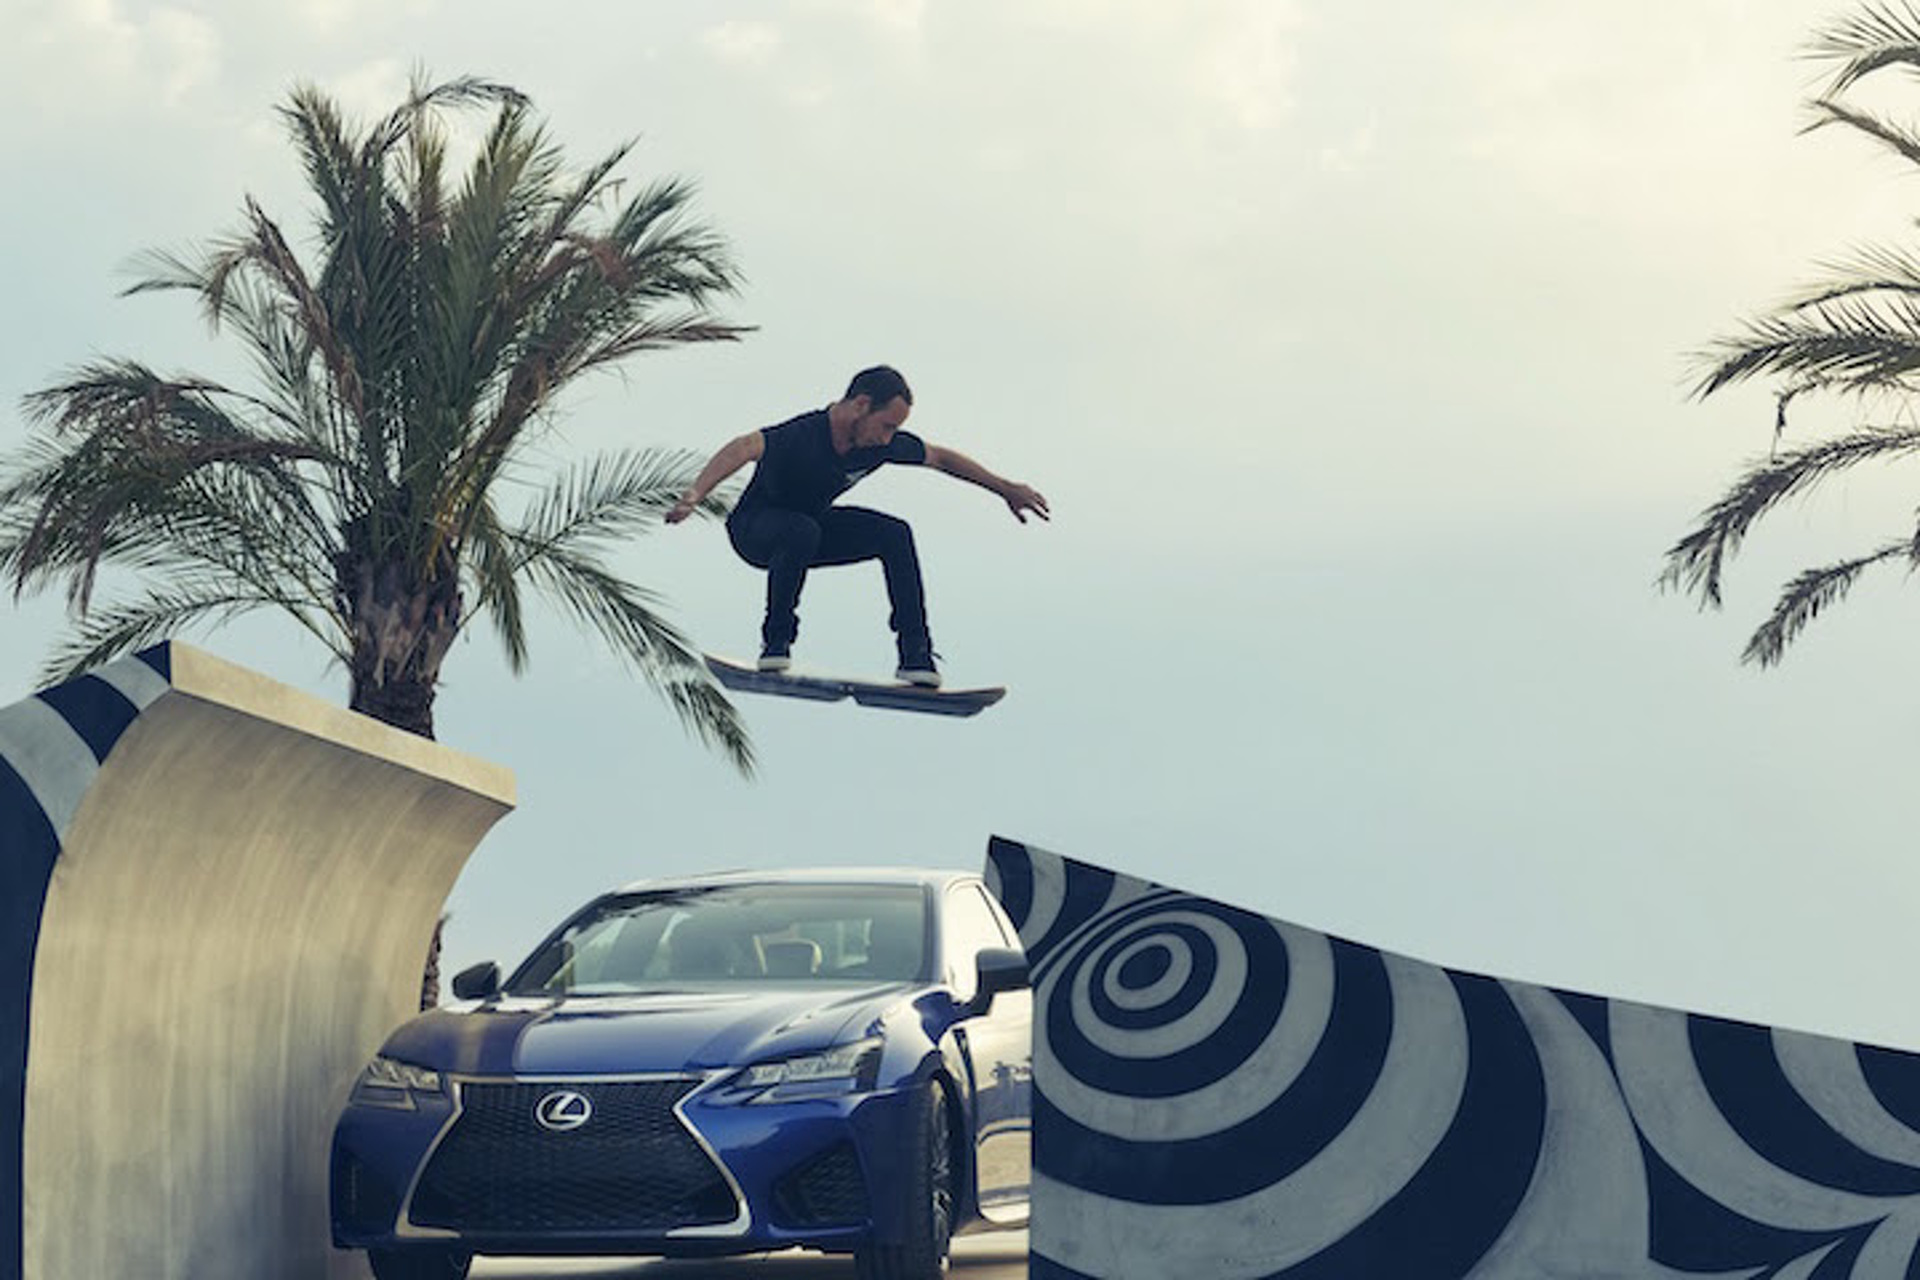 The Lexus Hoverboard Actually Works—But There's a Catch